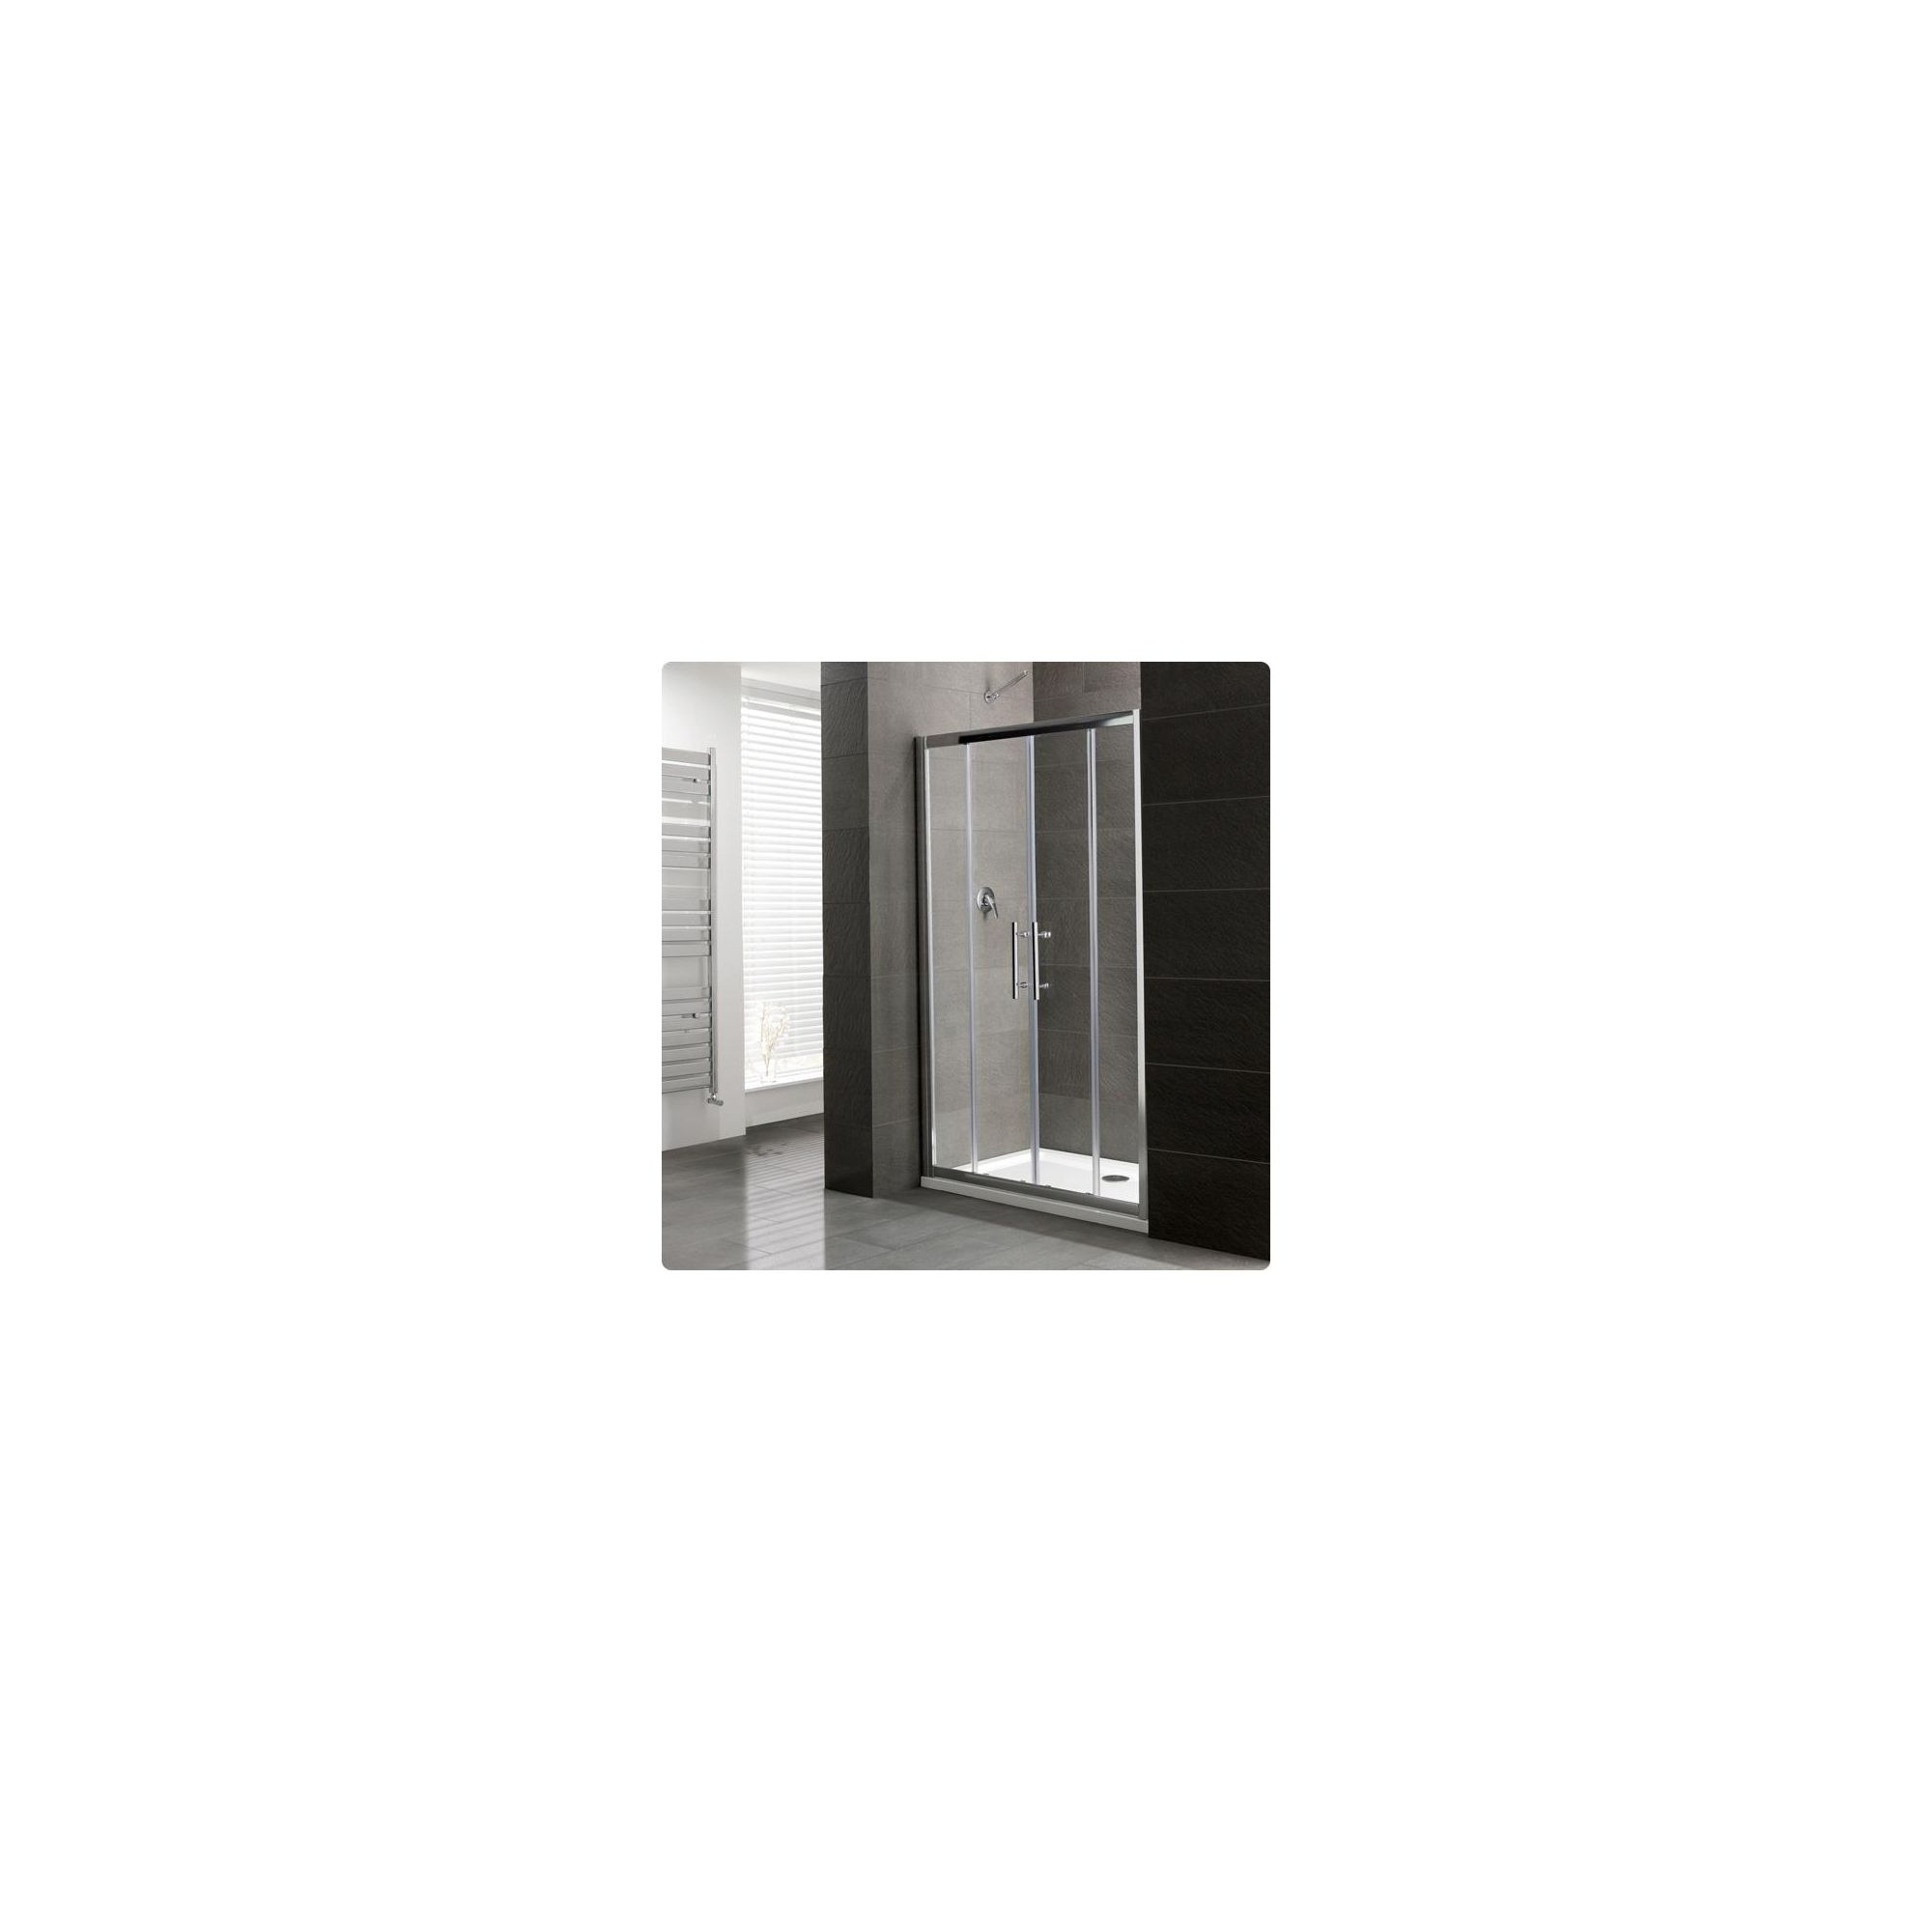 Duchy Select Silver Double Sliding Door Shower Enclosure, 1700mm x 800mm, Standard Tray, 6mm Glass at Tesco Direct